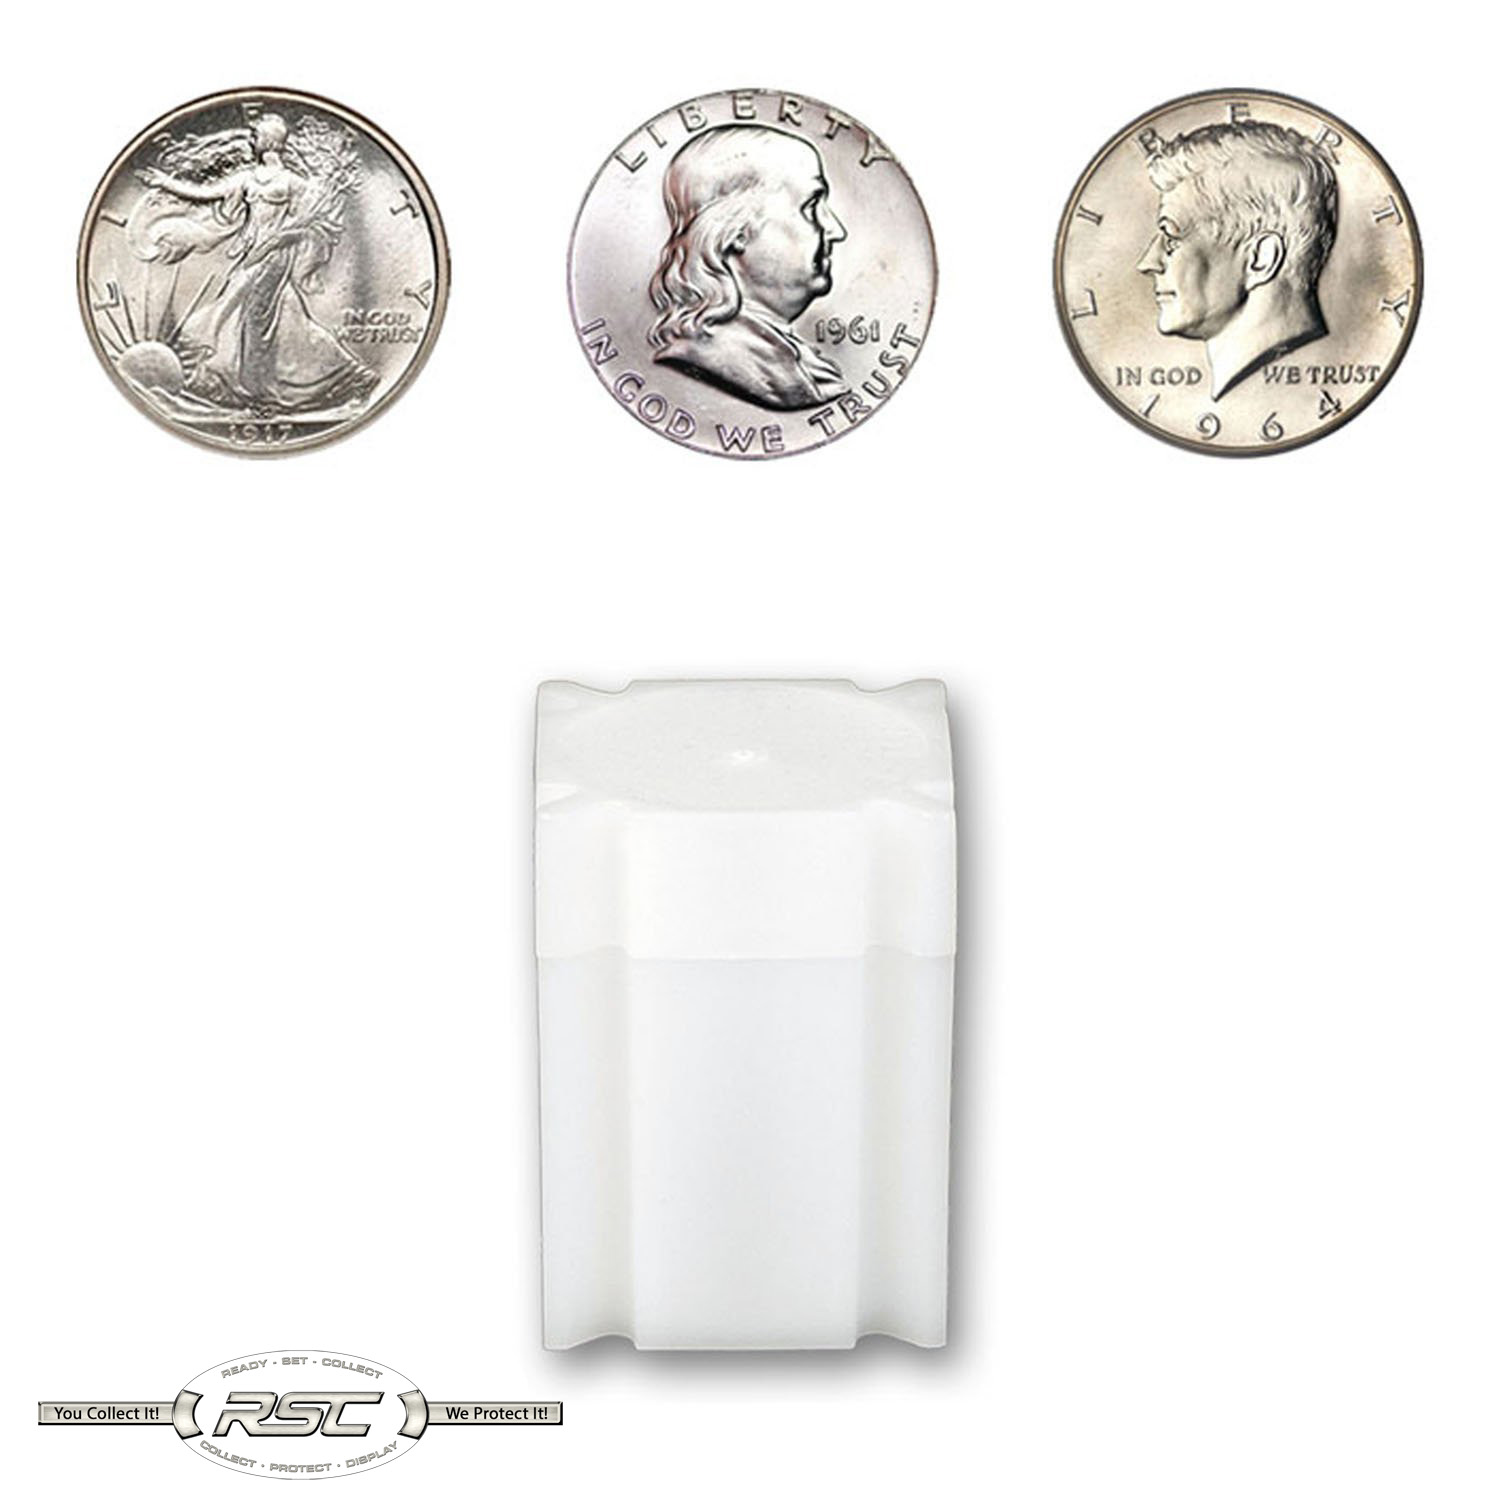 1 CoinSafe Tube for Nickel Holds 40 Coins!